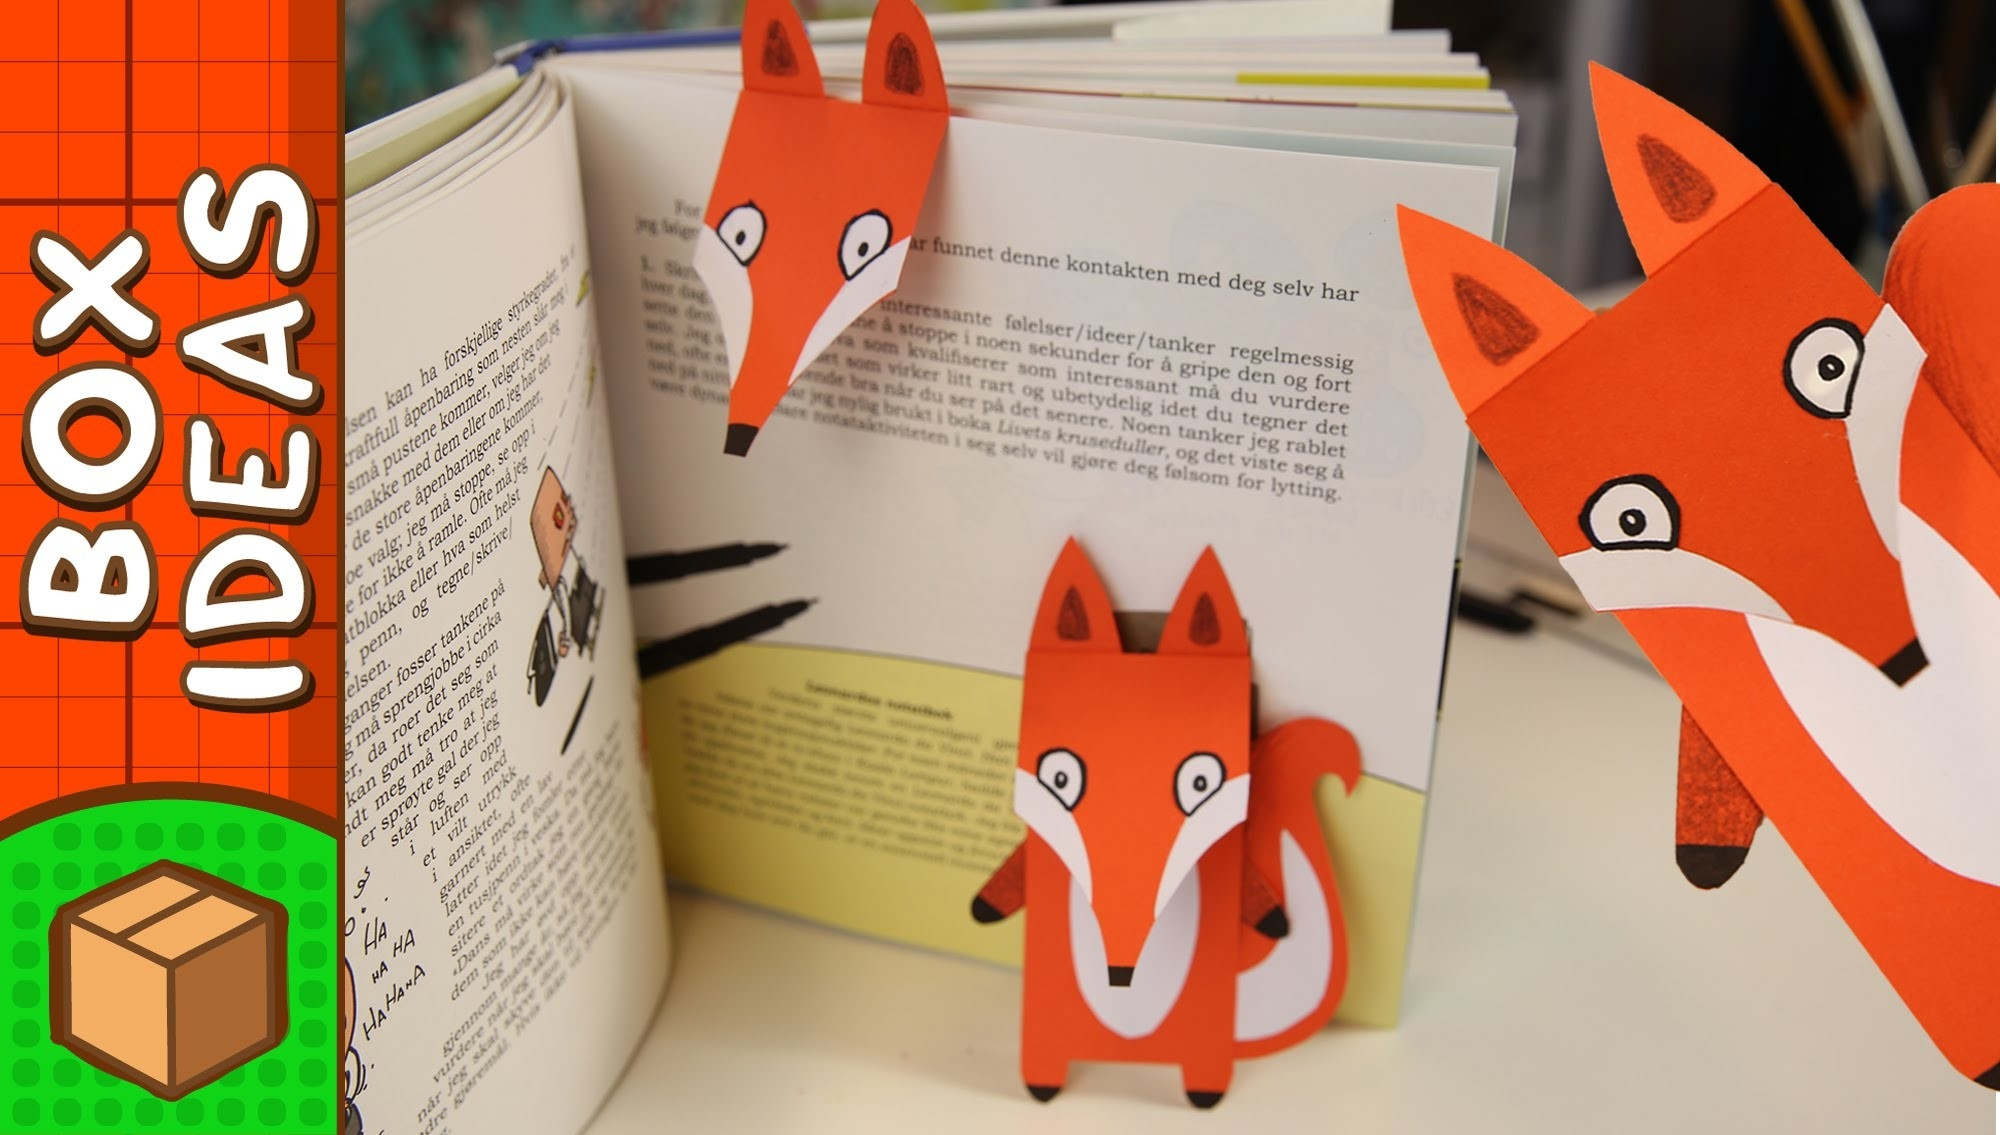 Diy Bookmark - Fox | Craft Ideas For Kids On Box Yourself - Youtube with regard to Creative Bookmark Designs For Kids 29692